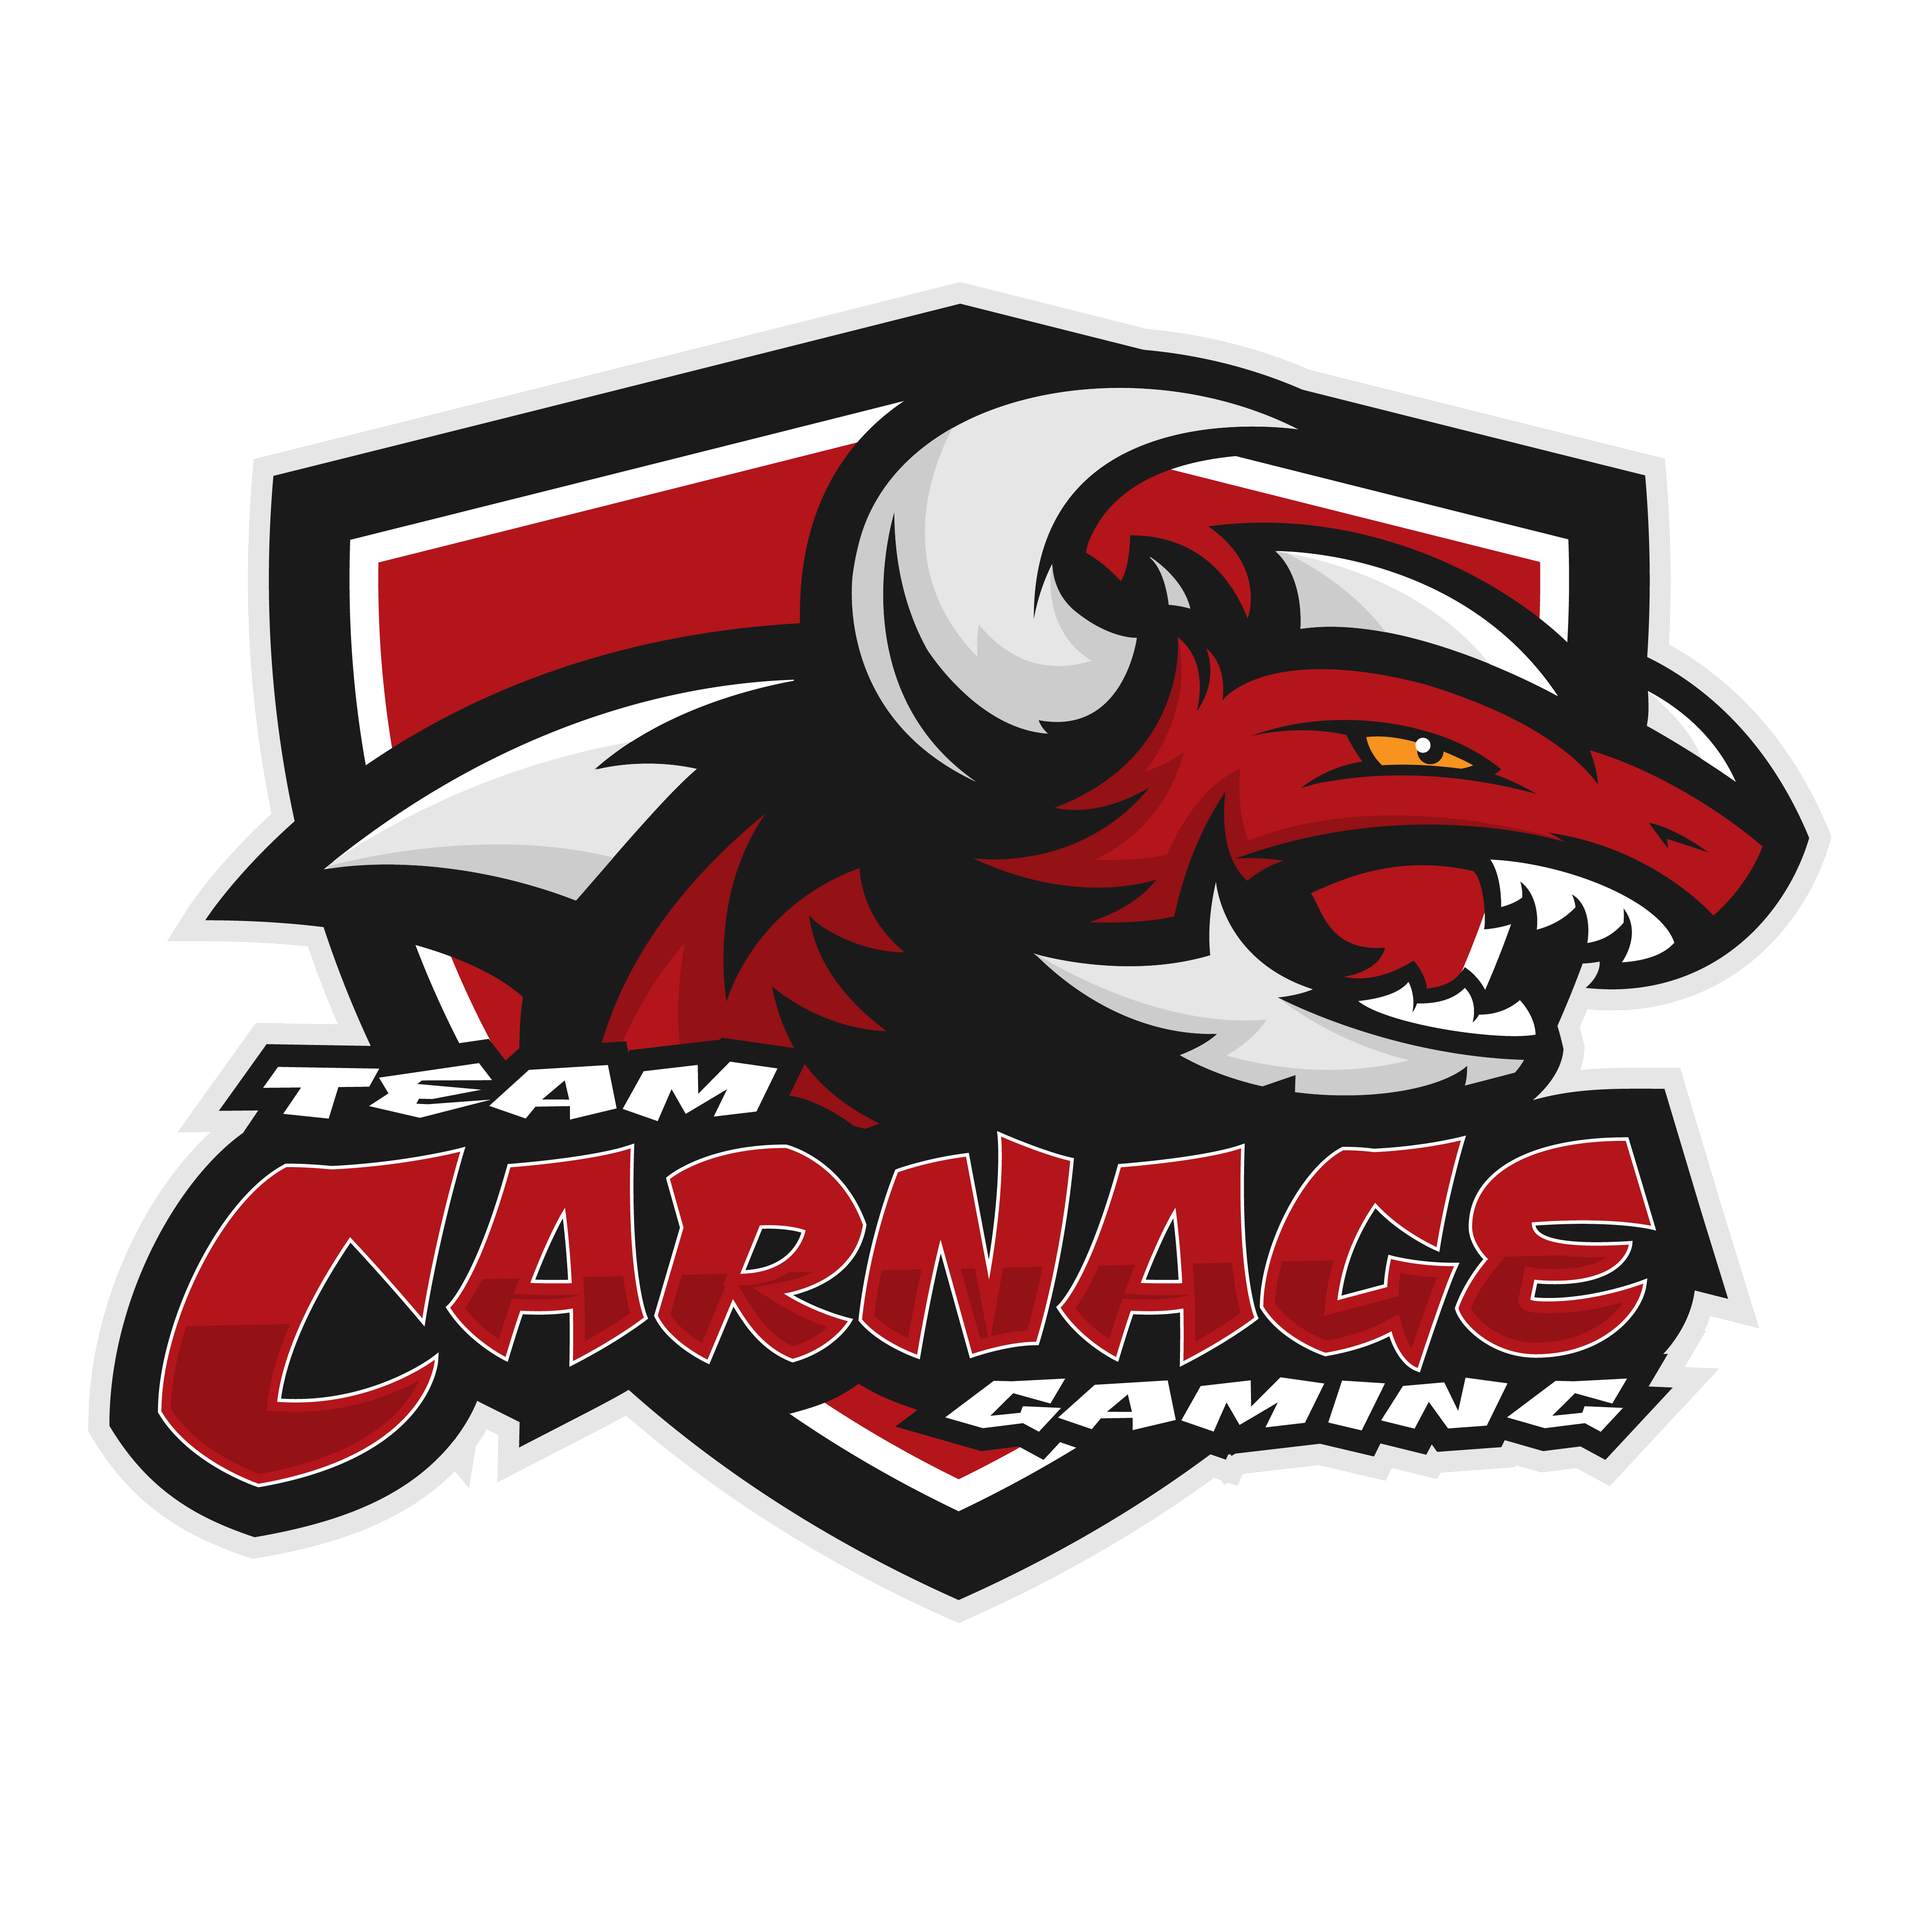 Official Team Carnage Gaming logo (with shield)